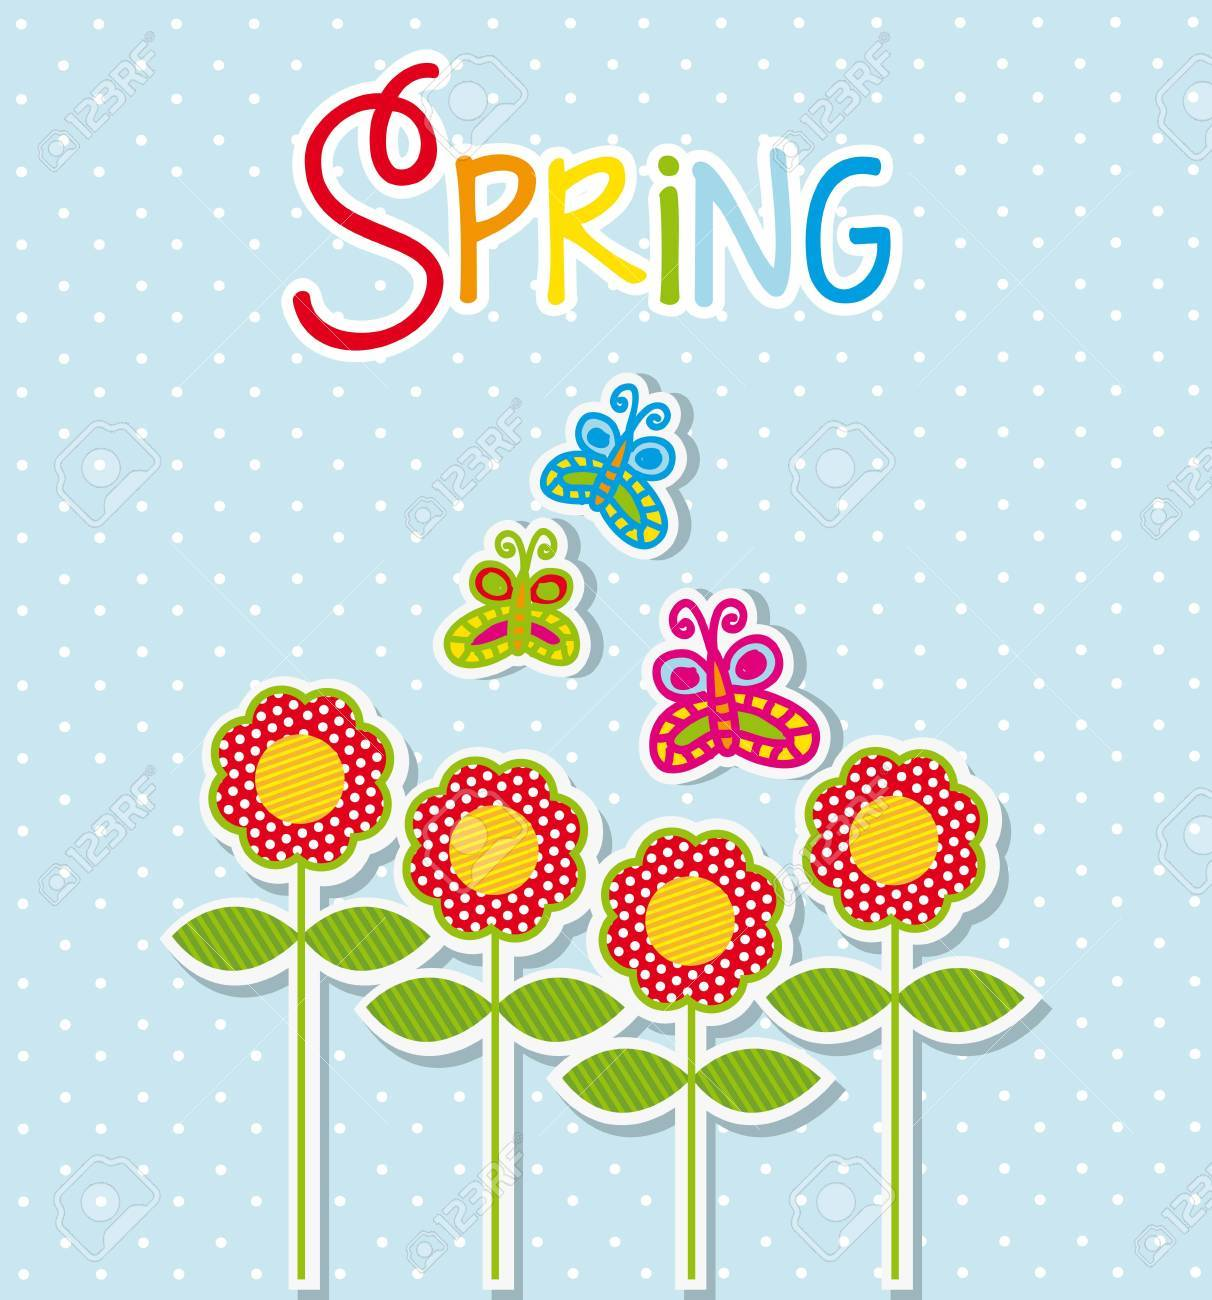 spring label with flowers and butterfly. vector illustration Stock Vector - 18073623